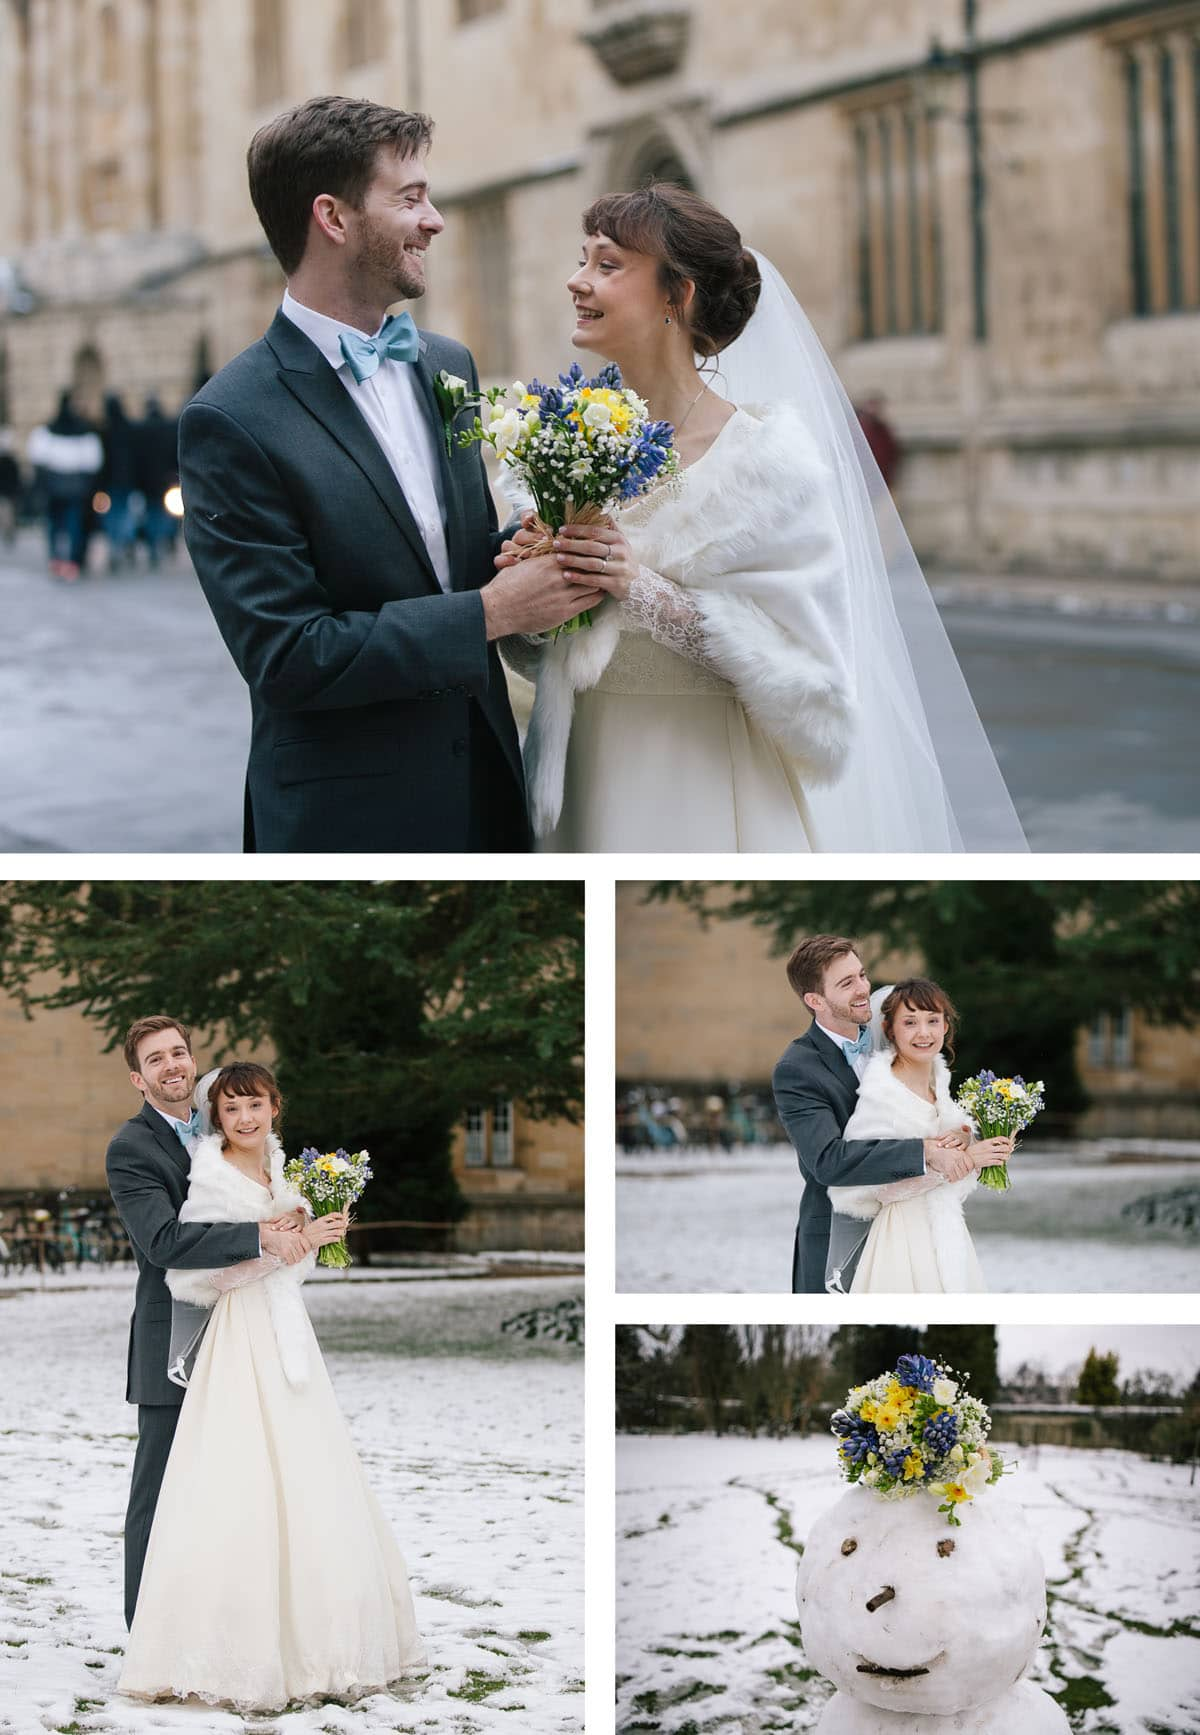 Collage of images of bride and groom in the snow at their winter wedding